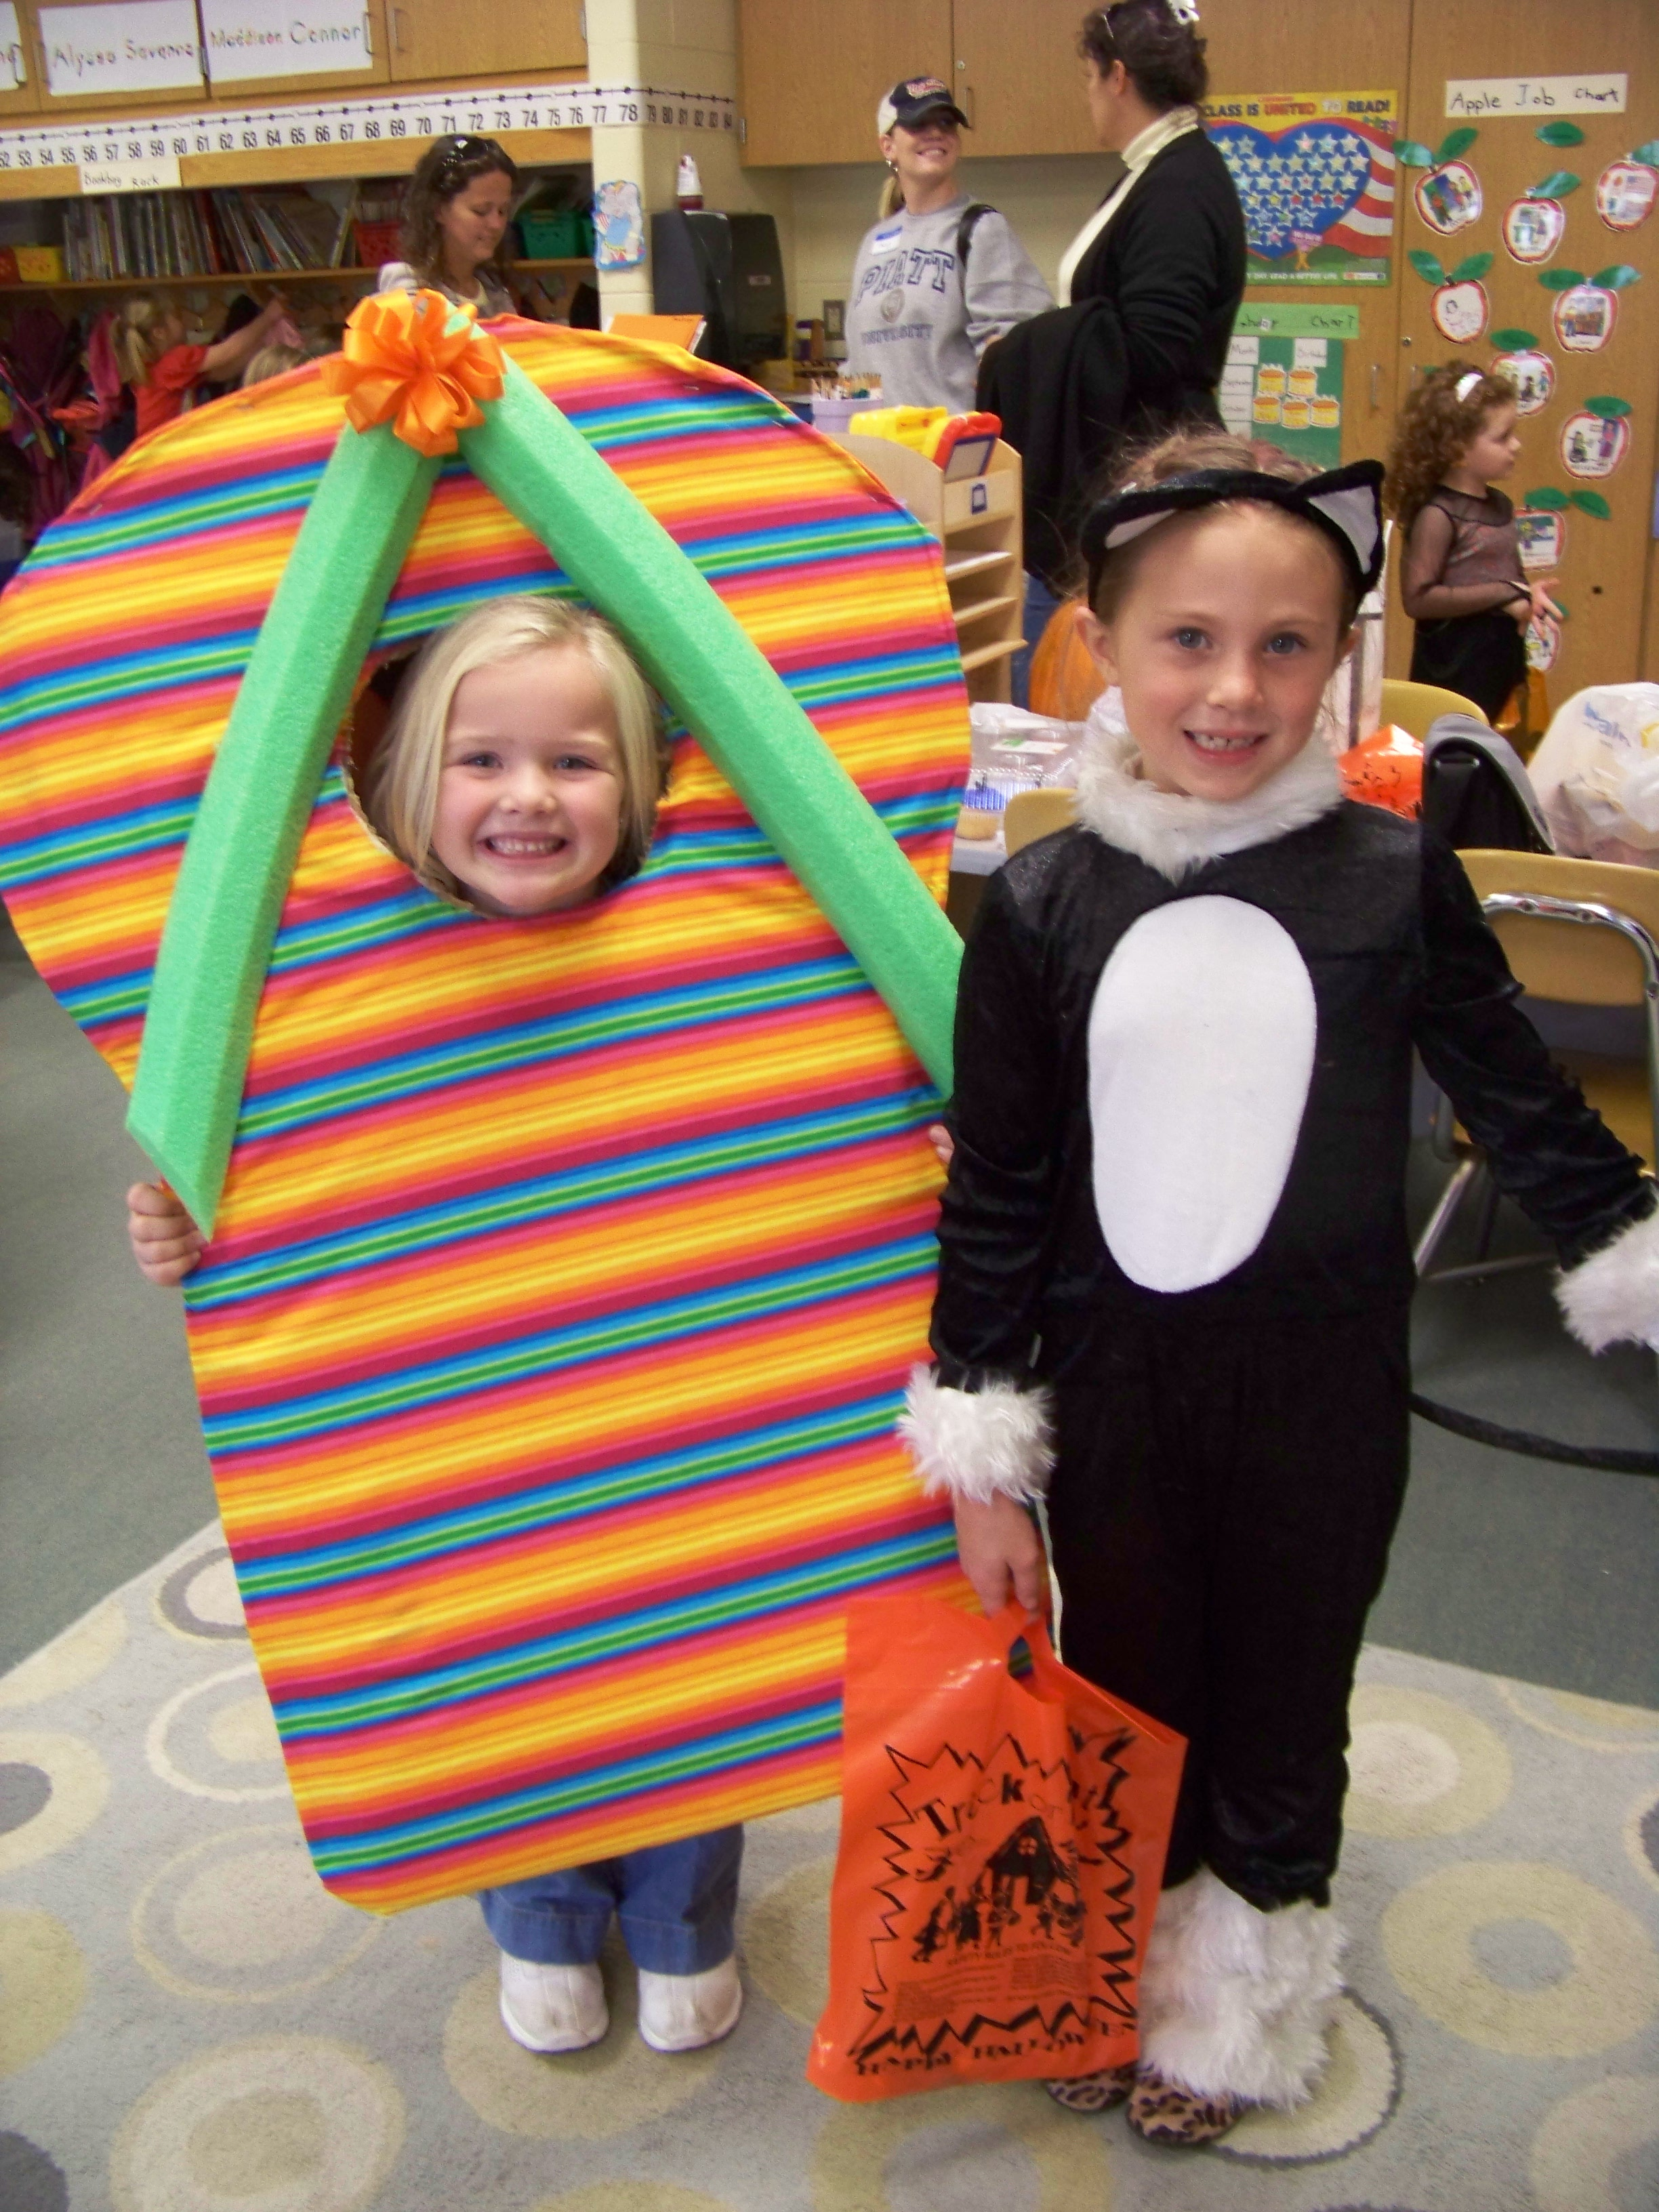 Flip flips  sc 1 st  Creating Really Awesome Fun Things & Flip flop costume homemade costumes - C.R.A.F.T.